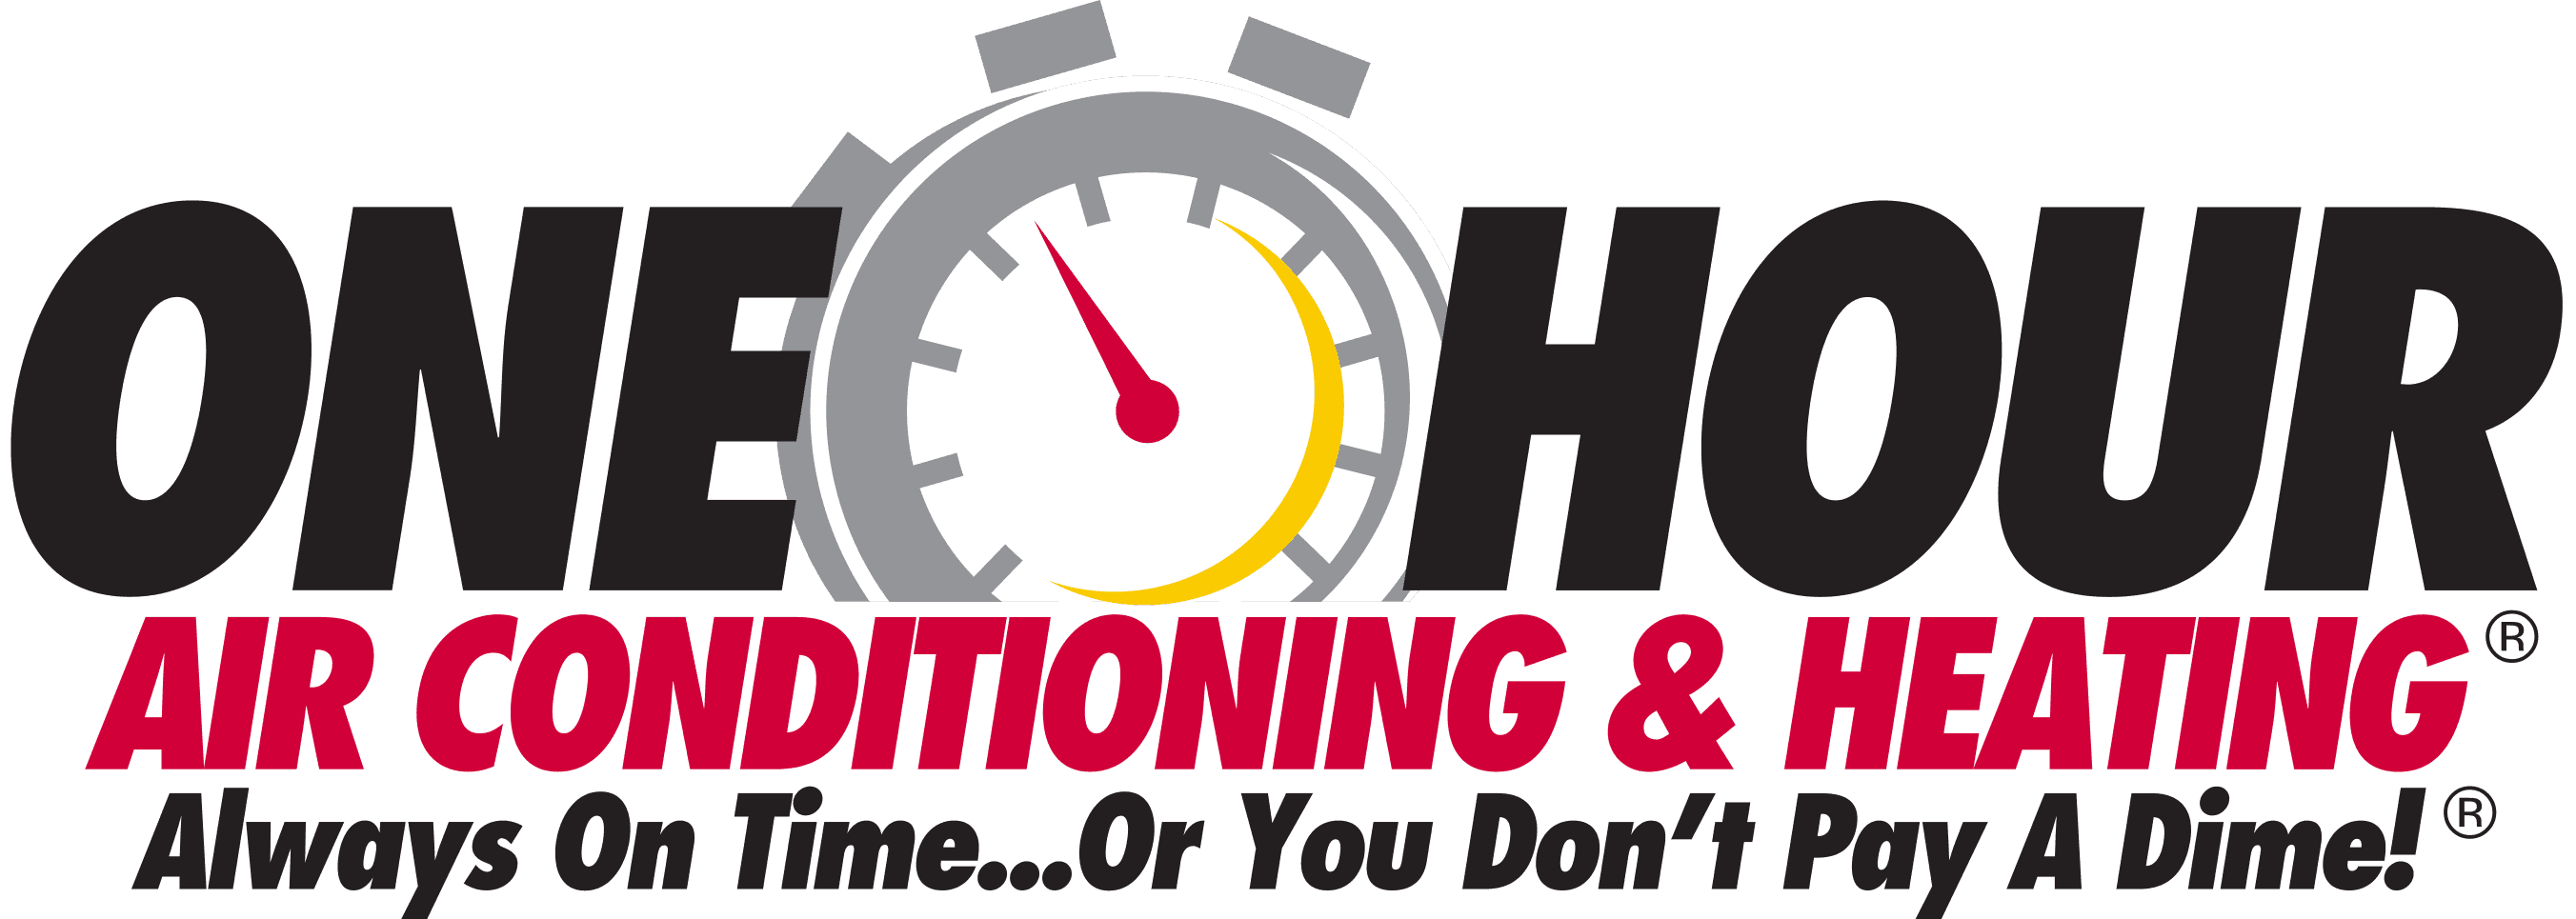 One Hour Air Conditioning & Heating Sierra Vista, AZ